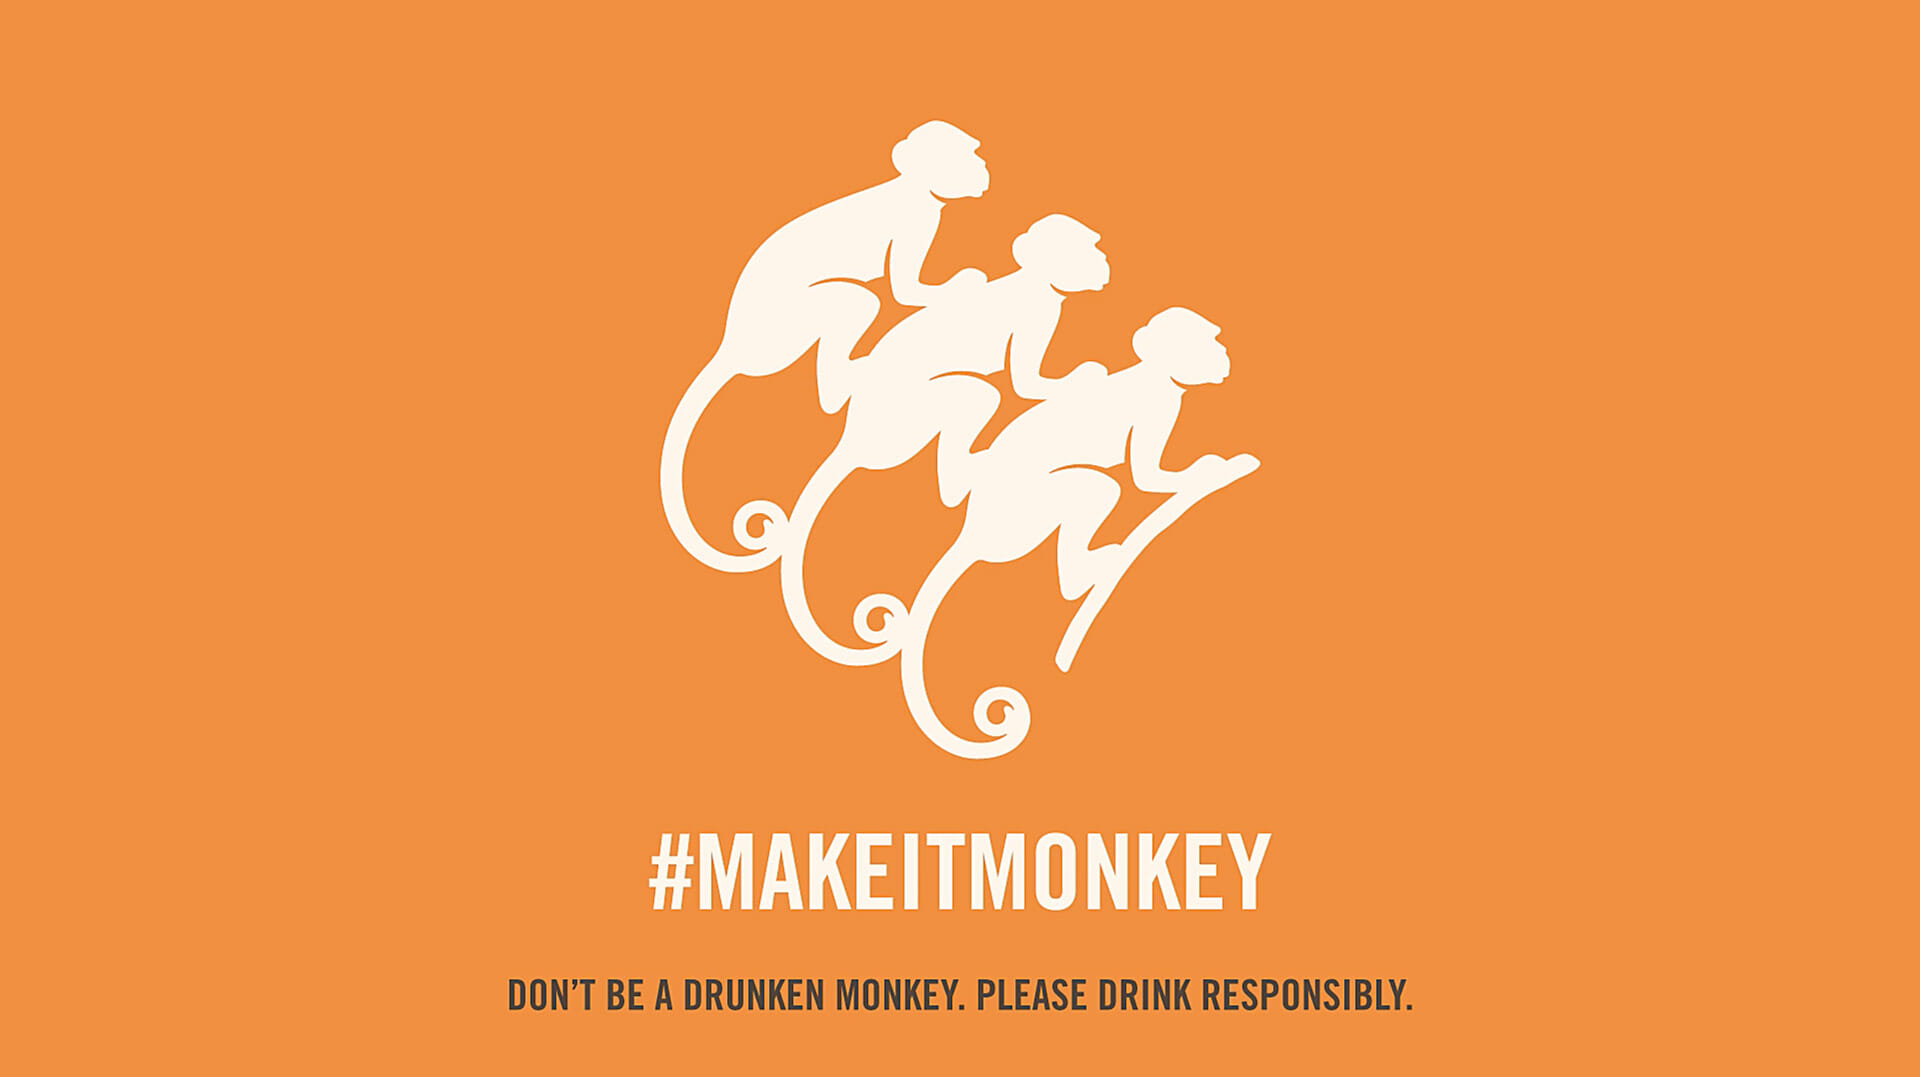 produccion-de-video-monkey-shoulder